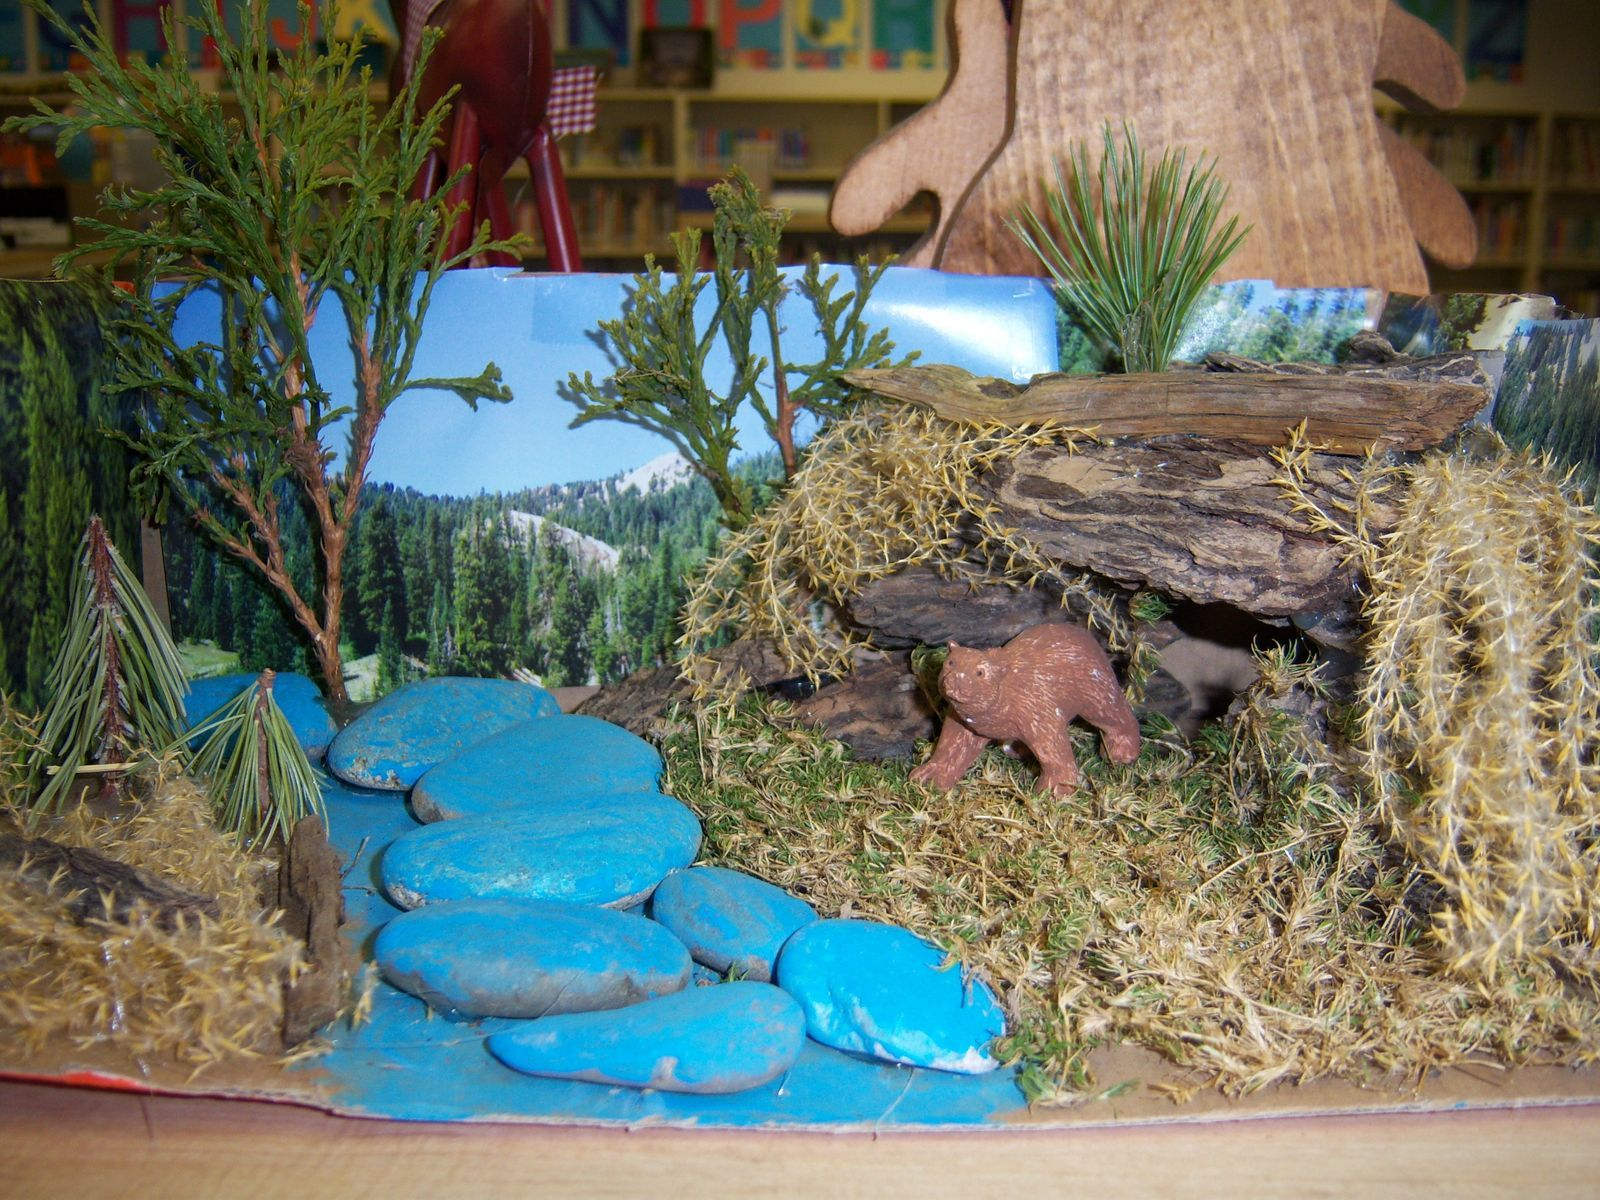 Make Your Own Diorama: Dioramas, Ponds And School Projects